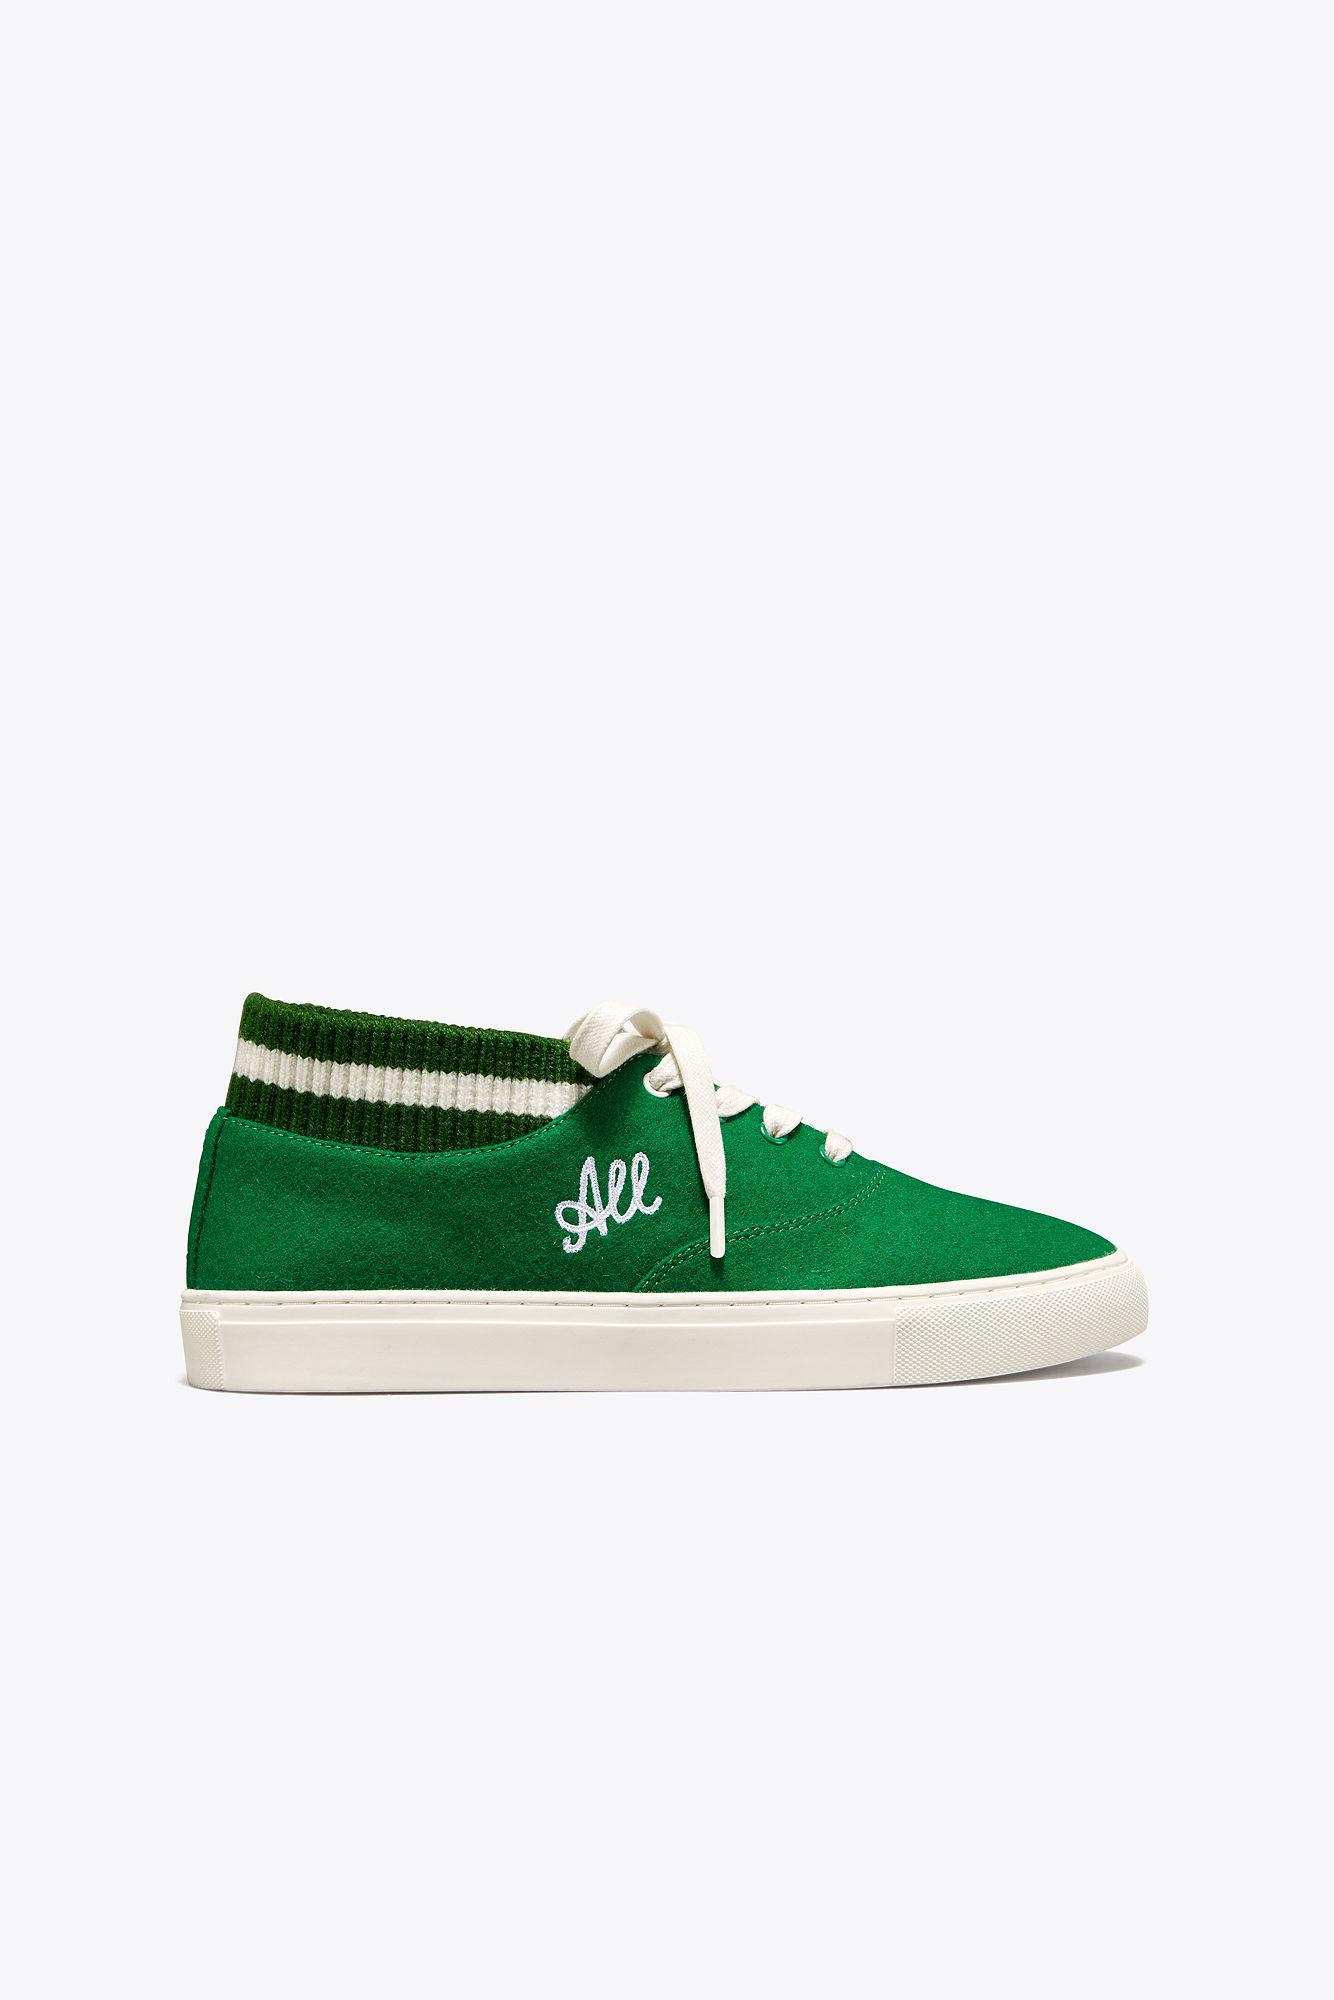 91c46546236 Lyst - Tory Sport Tory Burch Love All Sneakers in Green